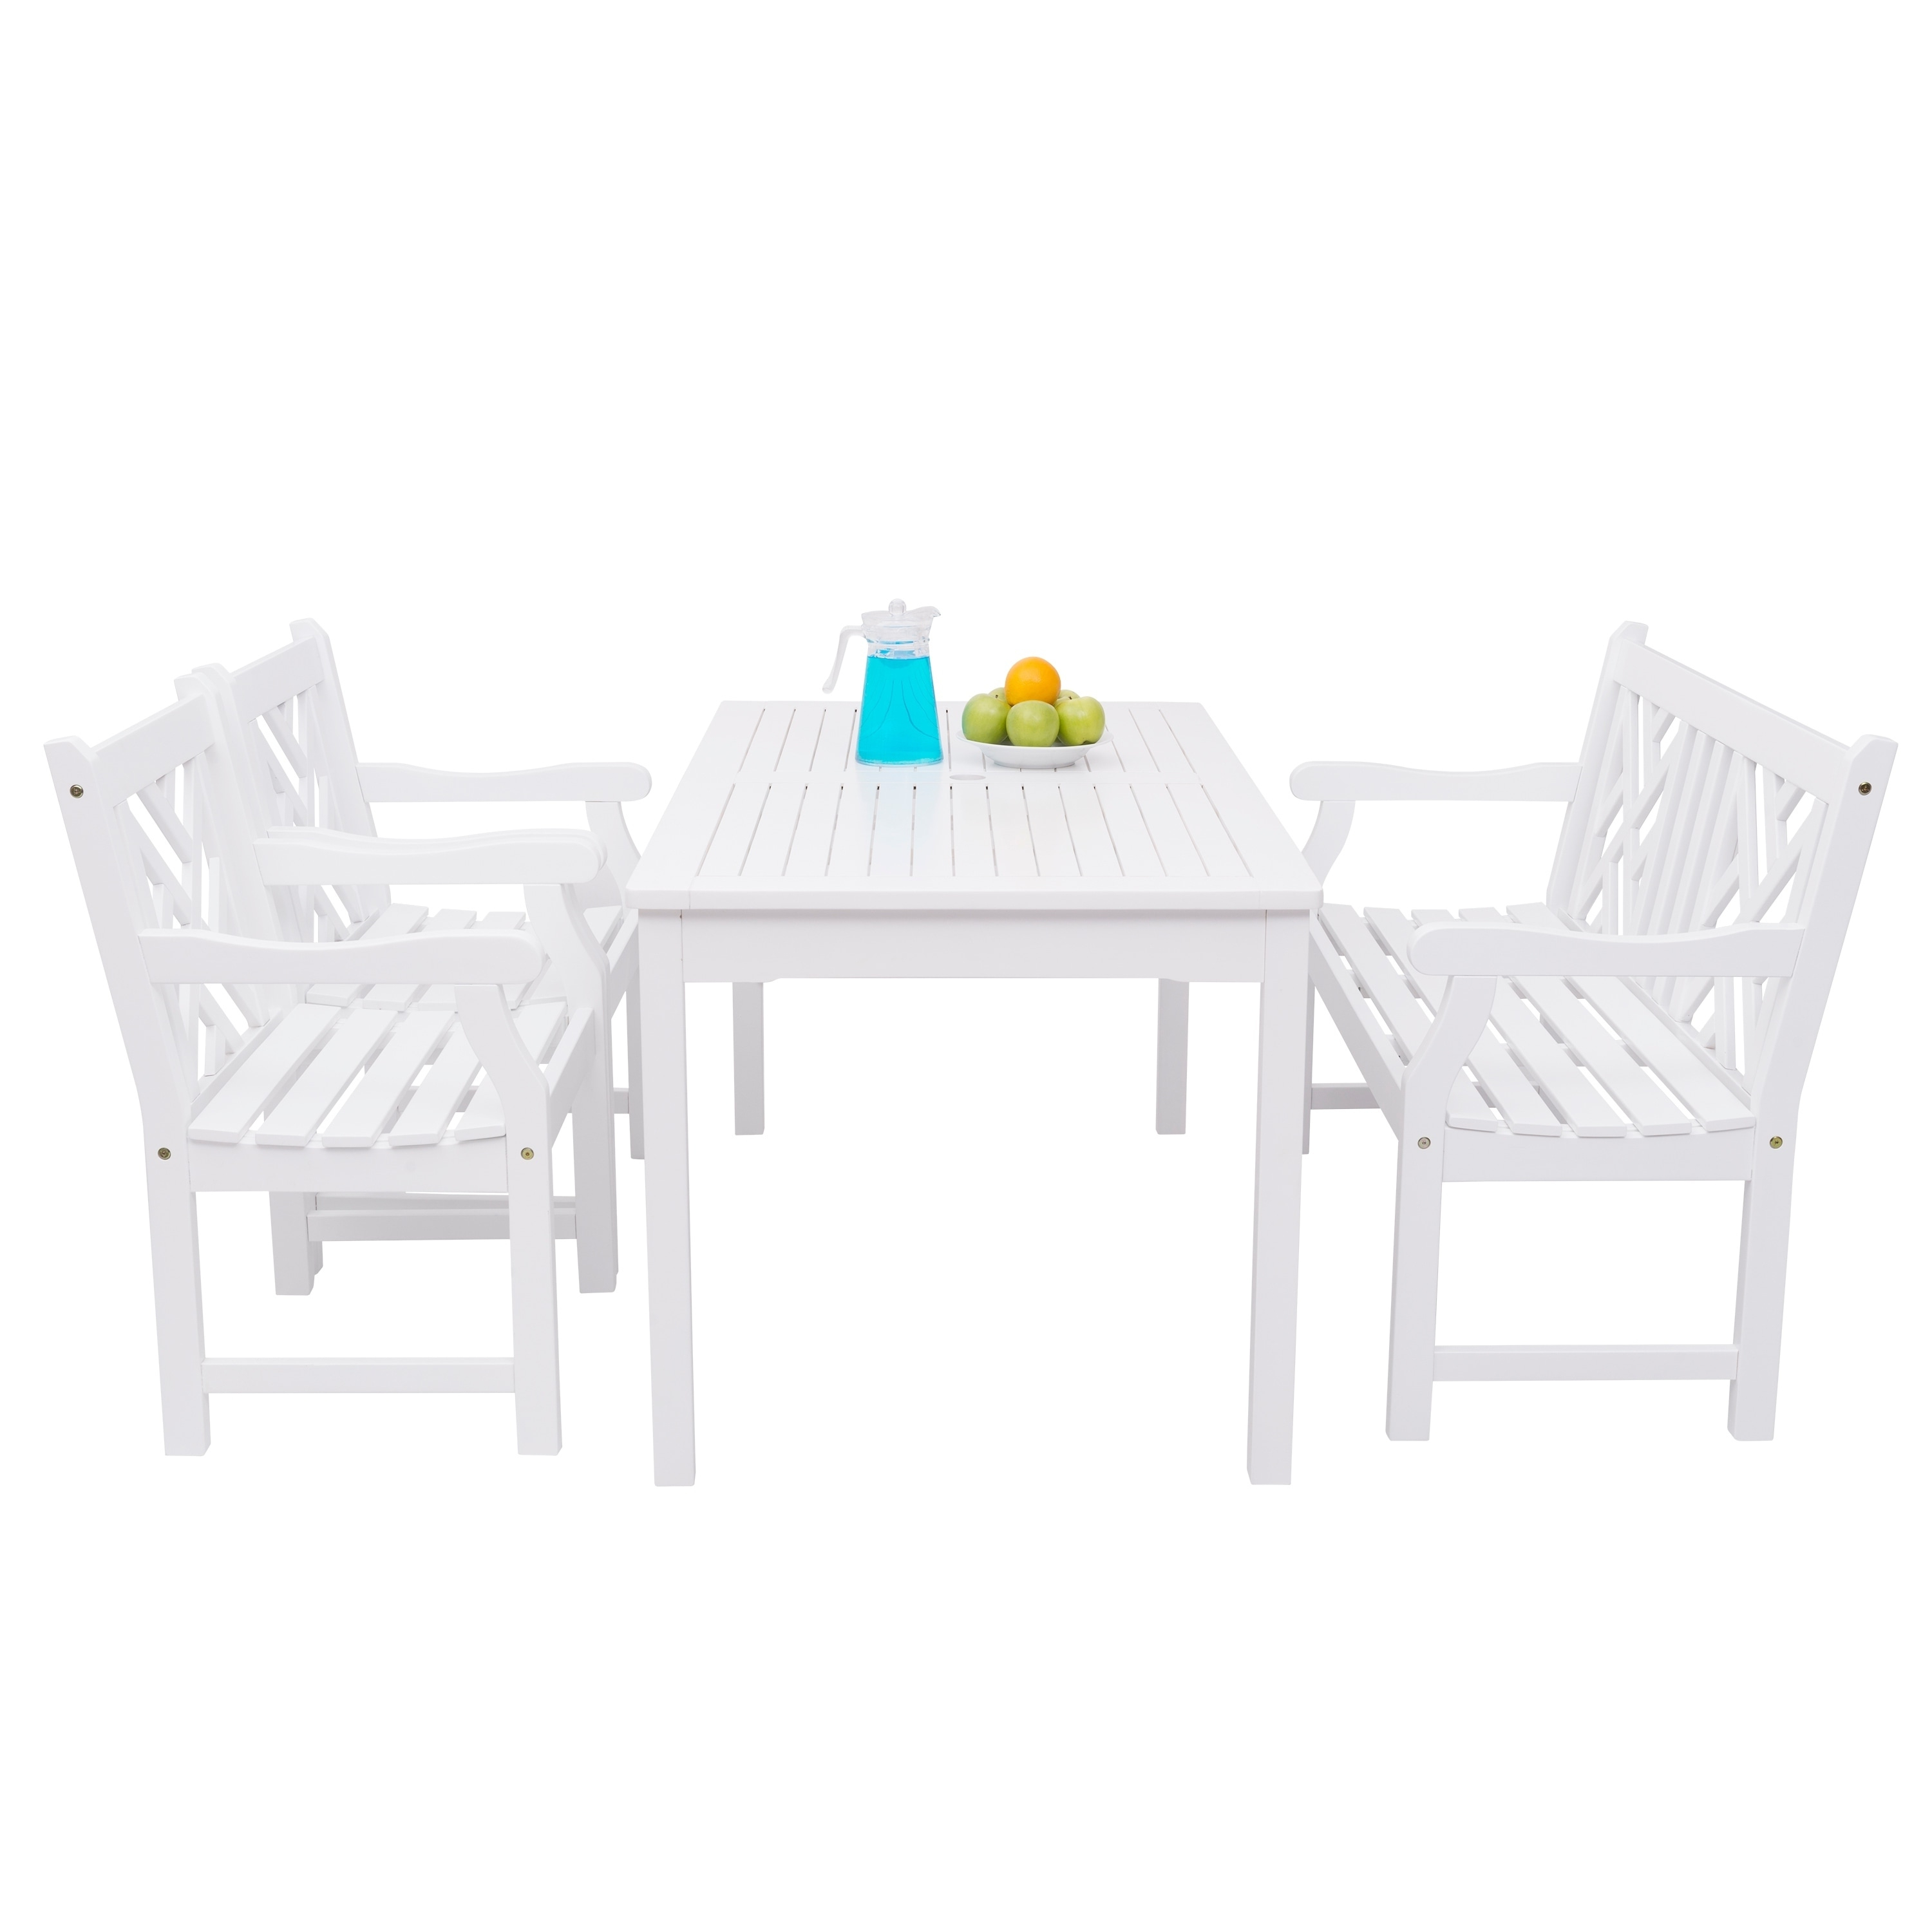 Havenside Home Surfside 4 Piece Wood Patio Dining Set With 4 Foot Bench In Fashionable Havenside Home Surfside Outdoor Lounge Chairs (View 11 of 25)